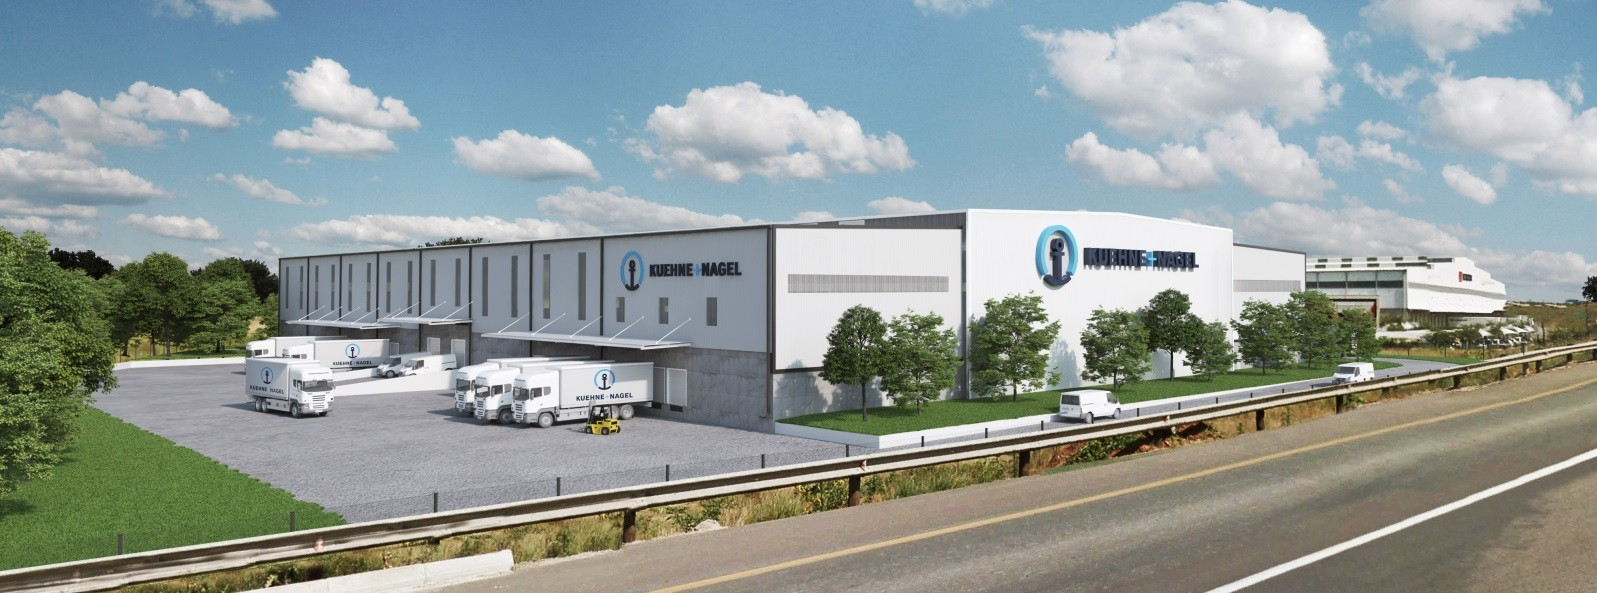 Kuehne + Nagel South Africa signed the contract for a 12.000 sqm build-to-suit facility in Johannesburg, South Africa